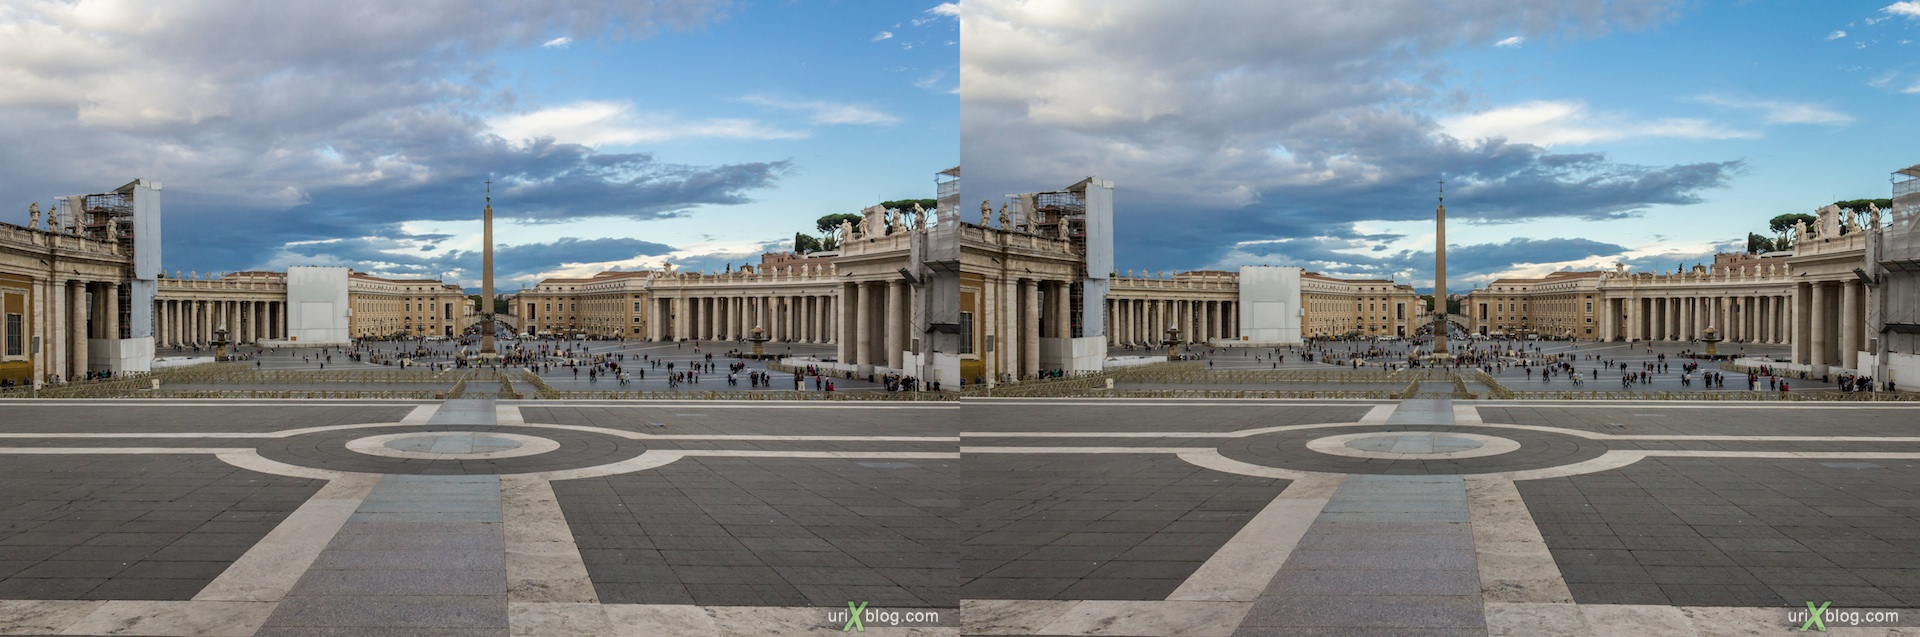 2012, Saint Peter's Square, Vatican, Rome, Italy, 3D, stereo pair, cross-eyed, crossview, cross view stereo pair